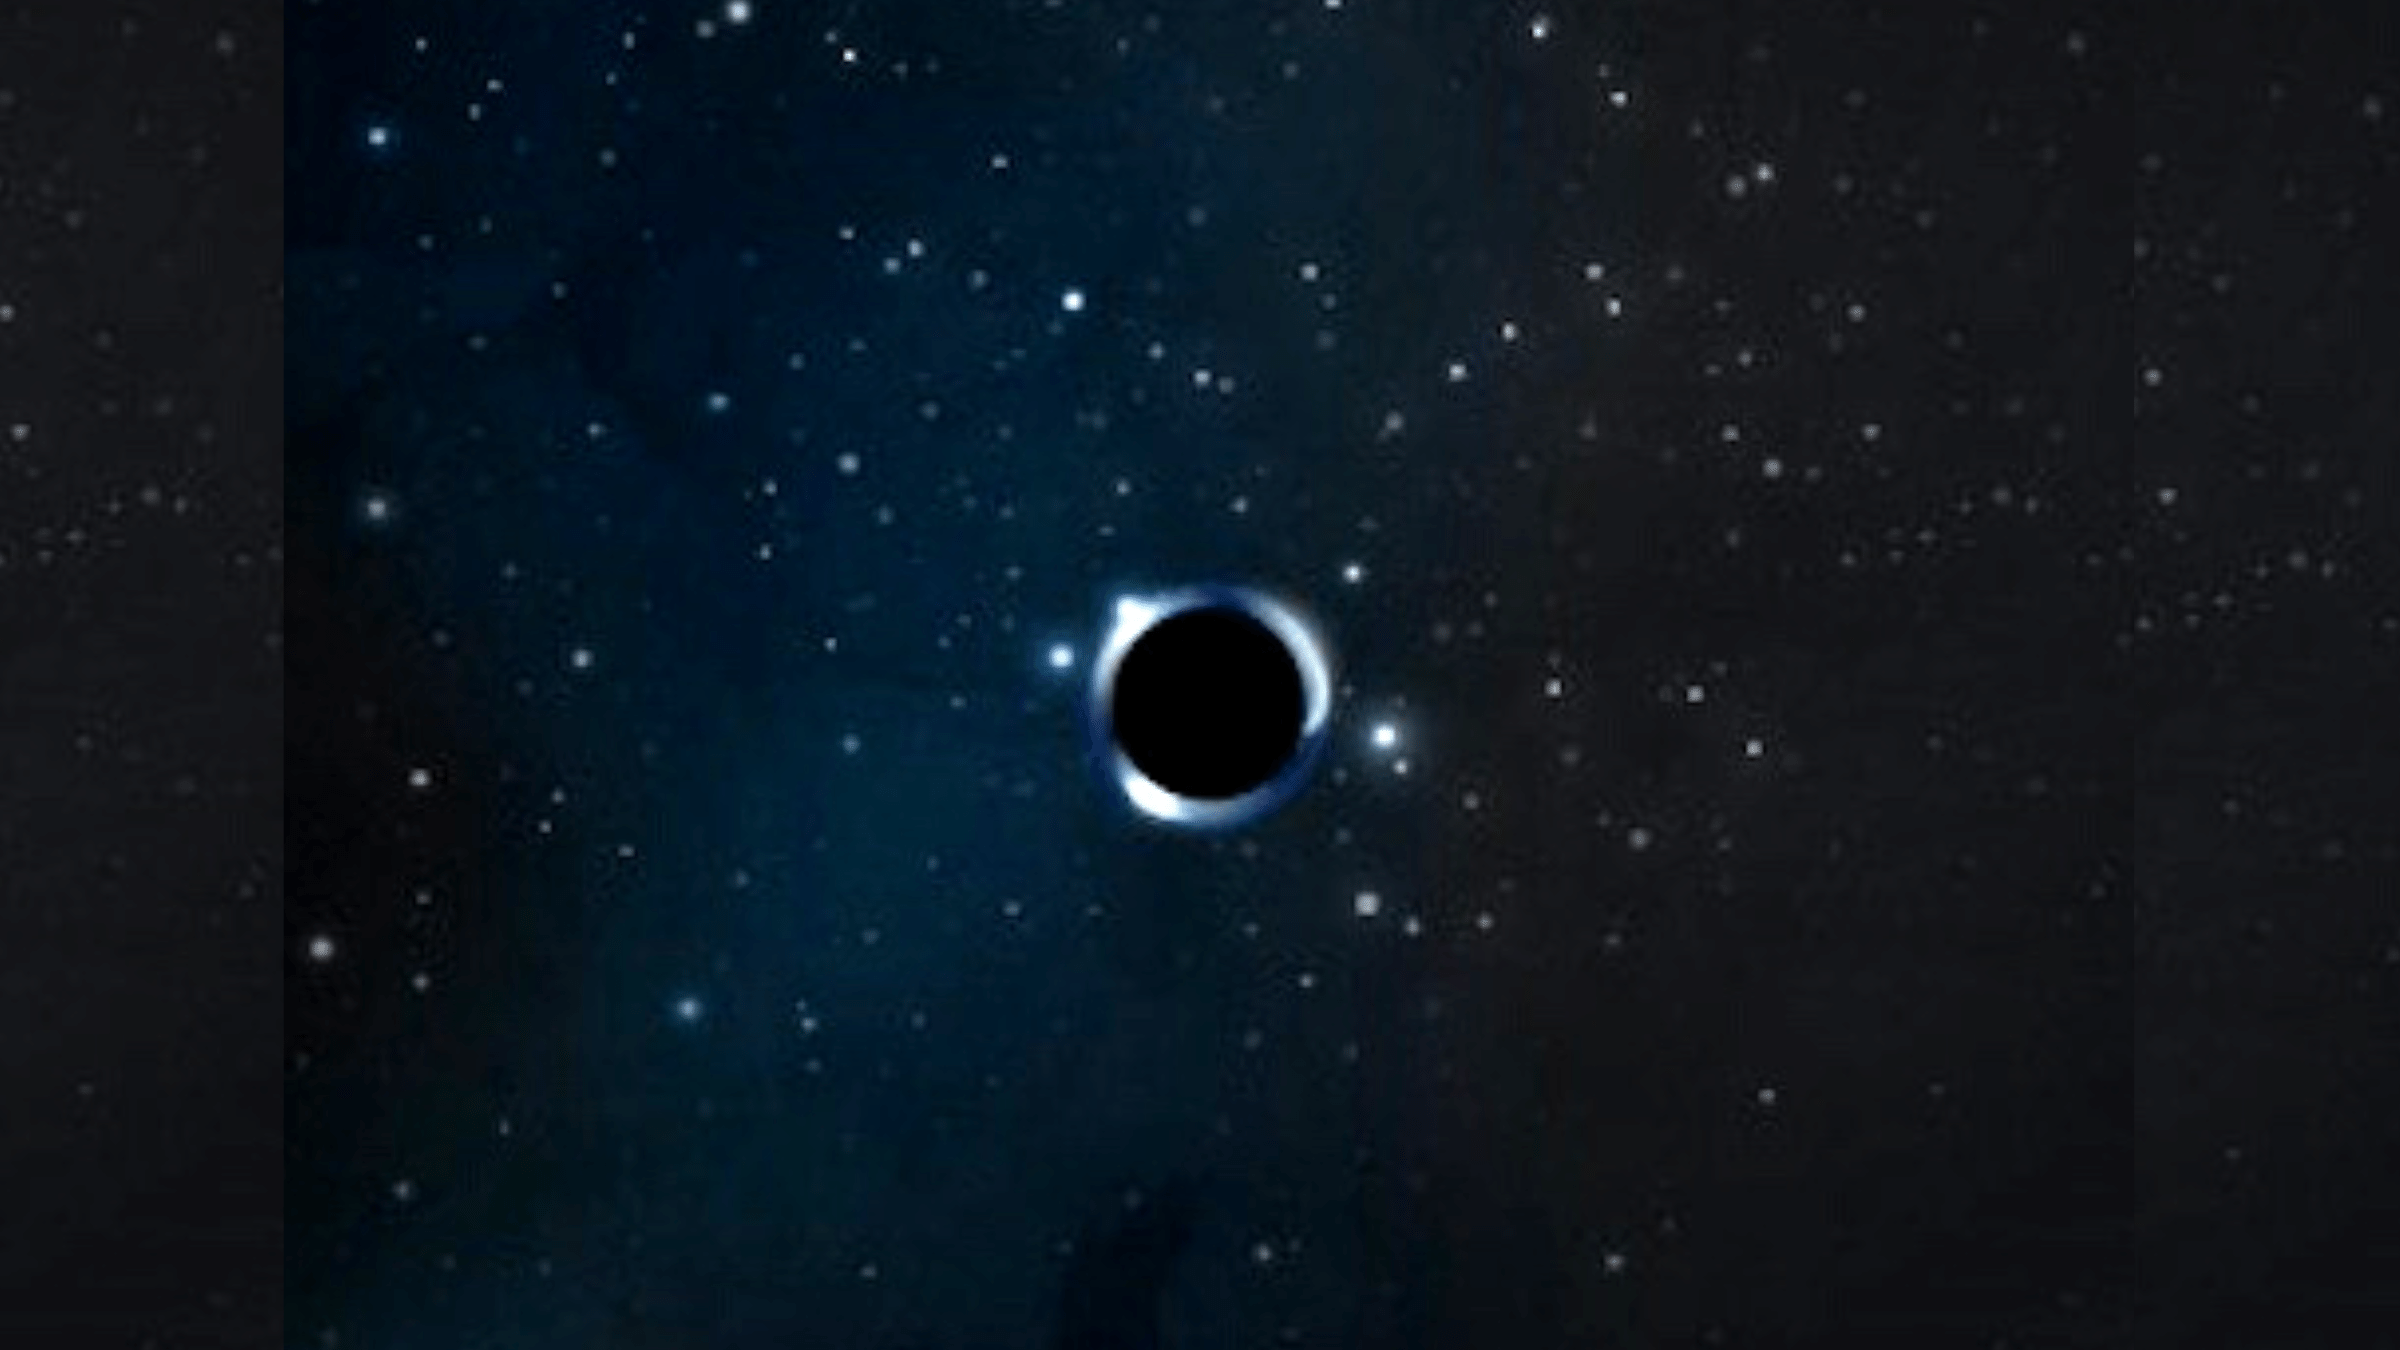 """Astronomers find the closest black hole to Earth, call it """"Unicorn"""""""